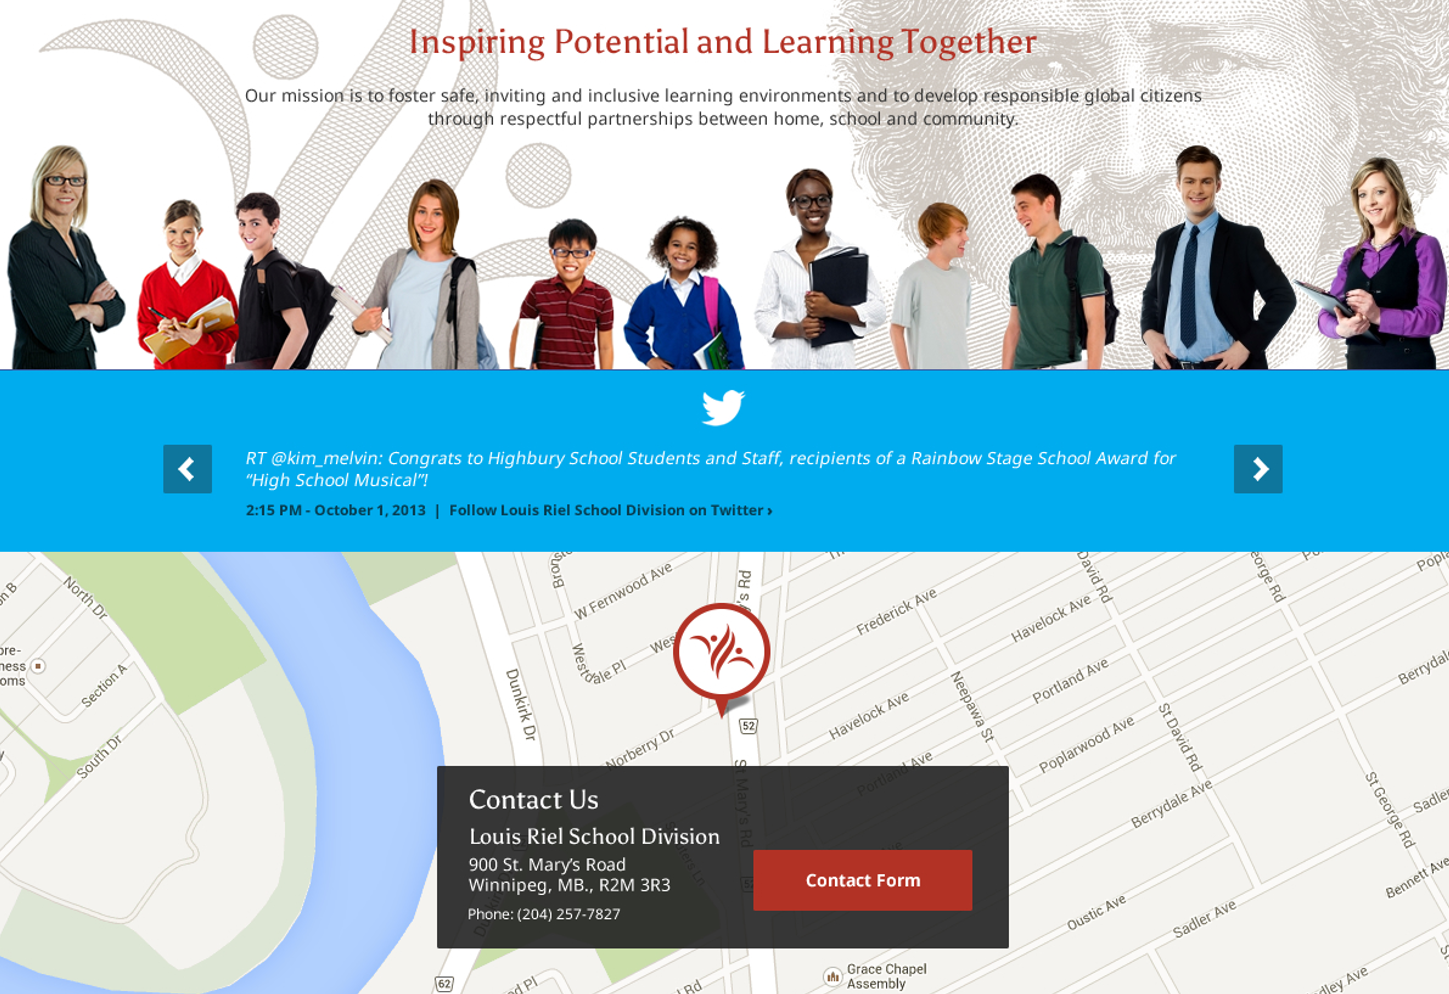 Interactive Motto Zone from 2012 LRSD Homepage